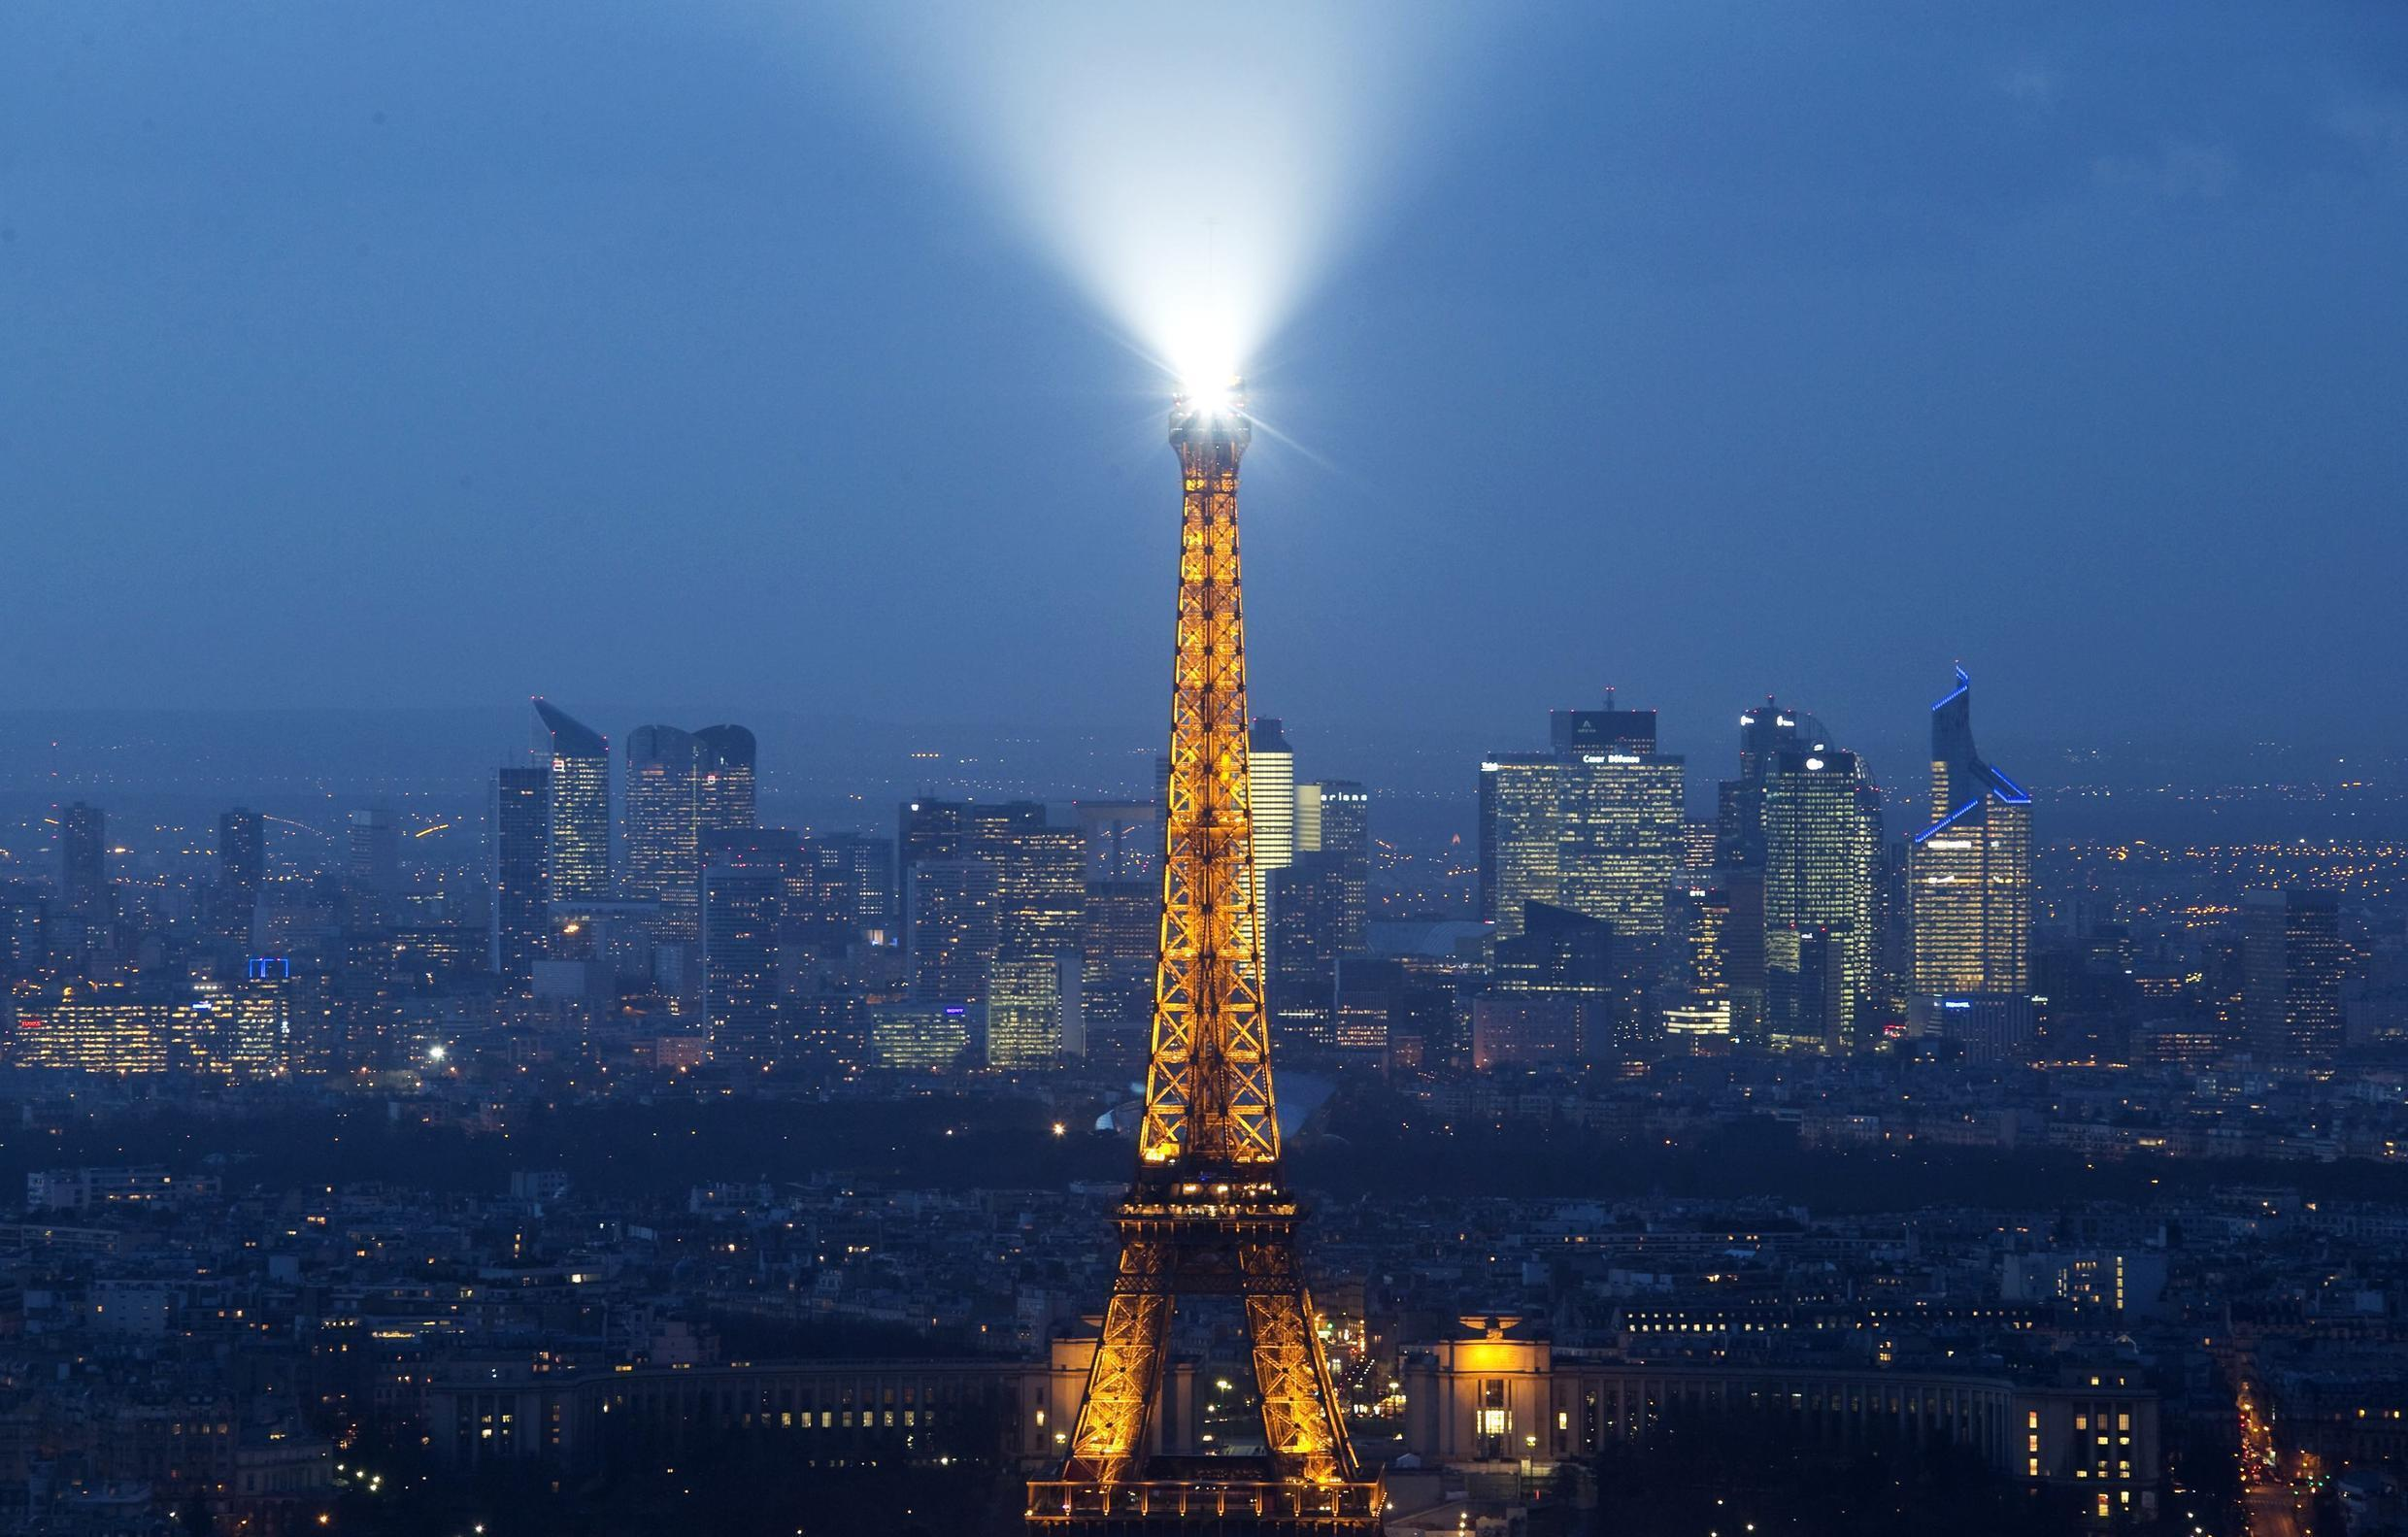 Drones were spotted flying over Paris for two nights running on 24 and 25 February.